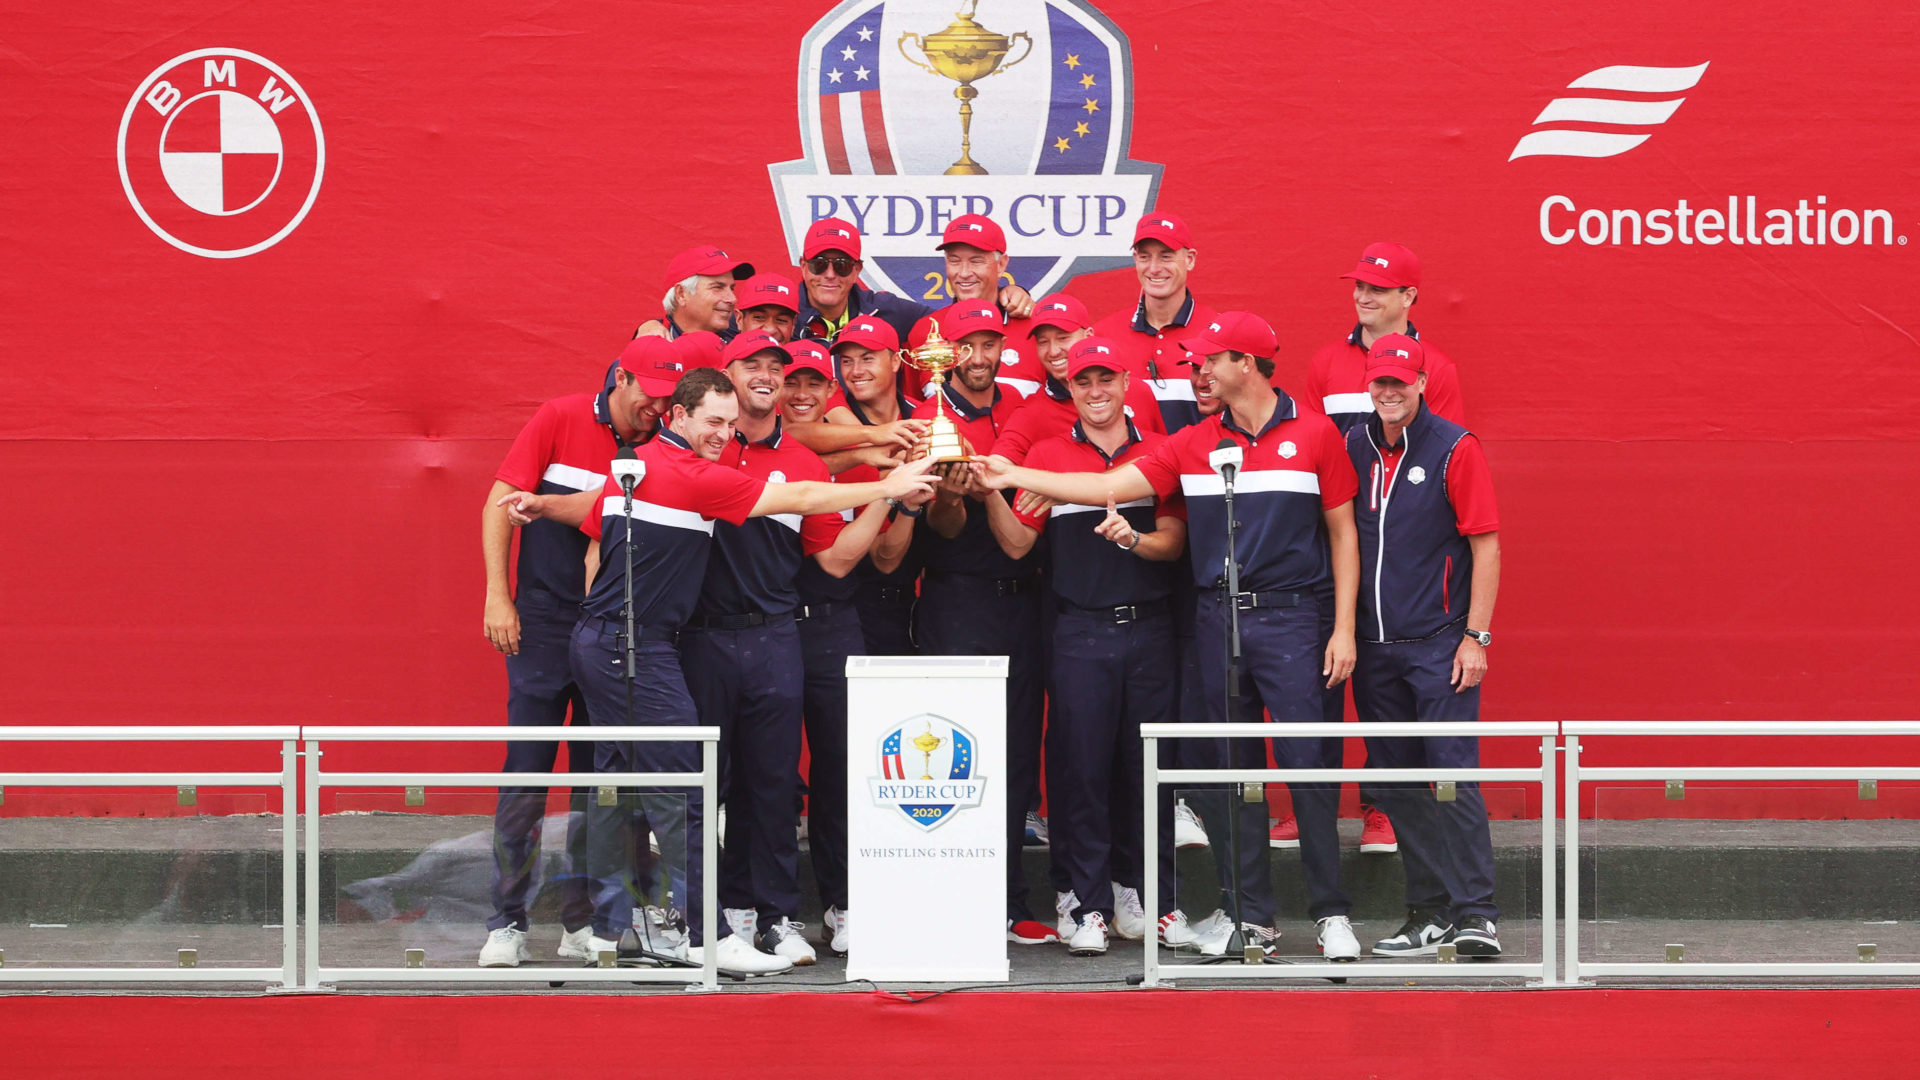 KOHLER, WISCONSIN - SEPTEMBER 26: Team United States celebrates with the Ryder Cup after defeating Team Europe 19 to 9 in the 43rd Ryder Cup at Whistling Straits on September 26, 2021 in Kohler, Wisconsin. (Photo by Stacy Revere/Getty Images)